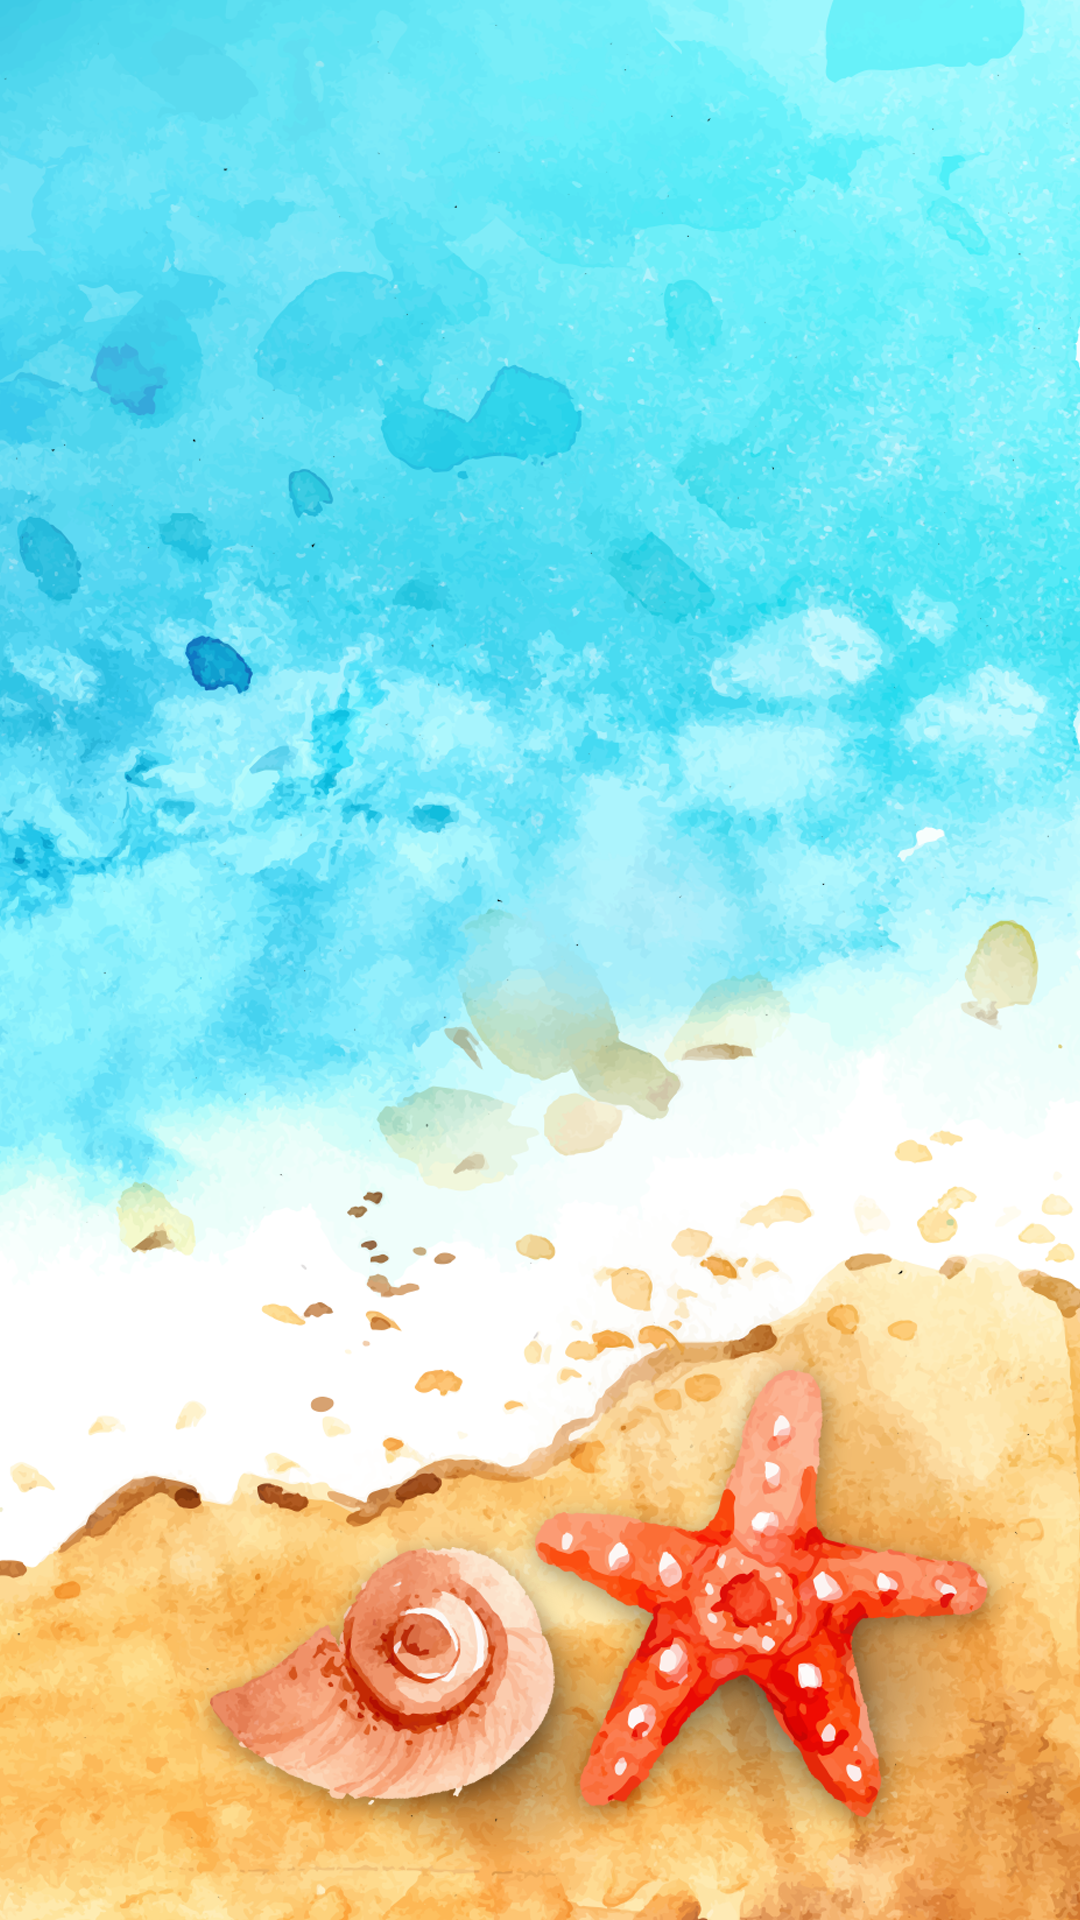 The Best Free Ultra Watercolor Images Download From 26 Free